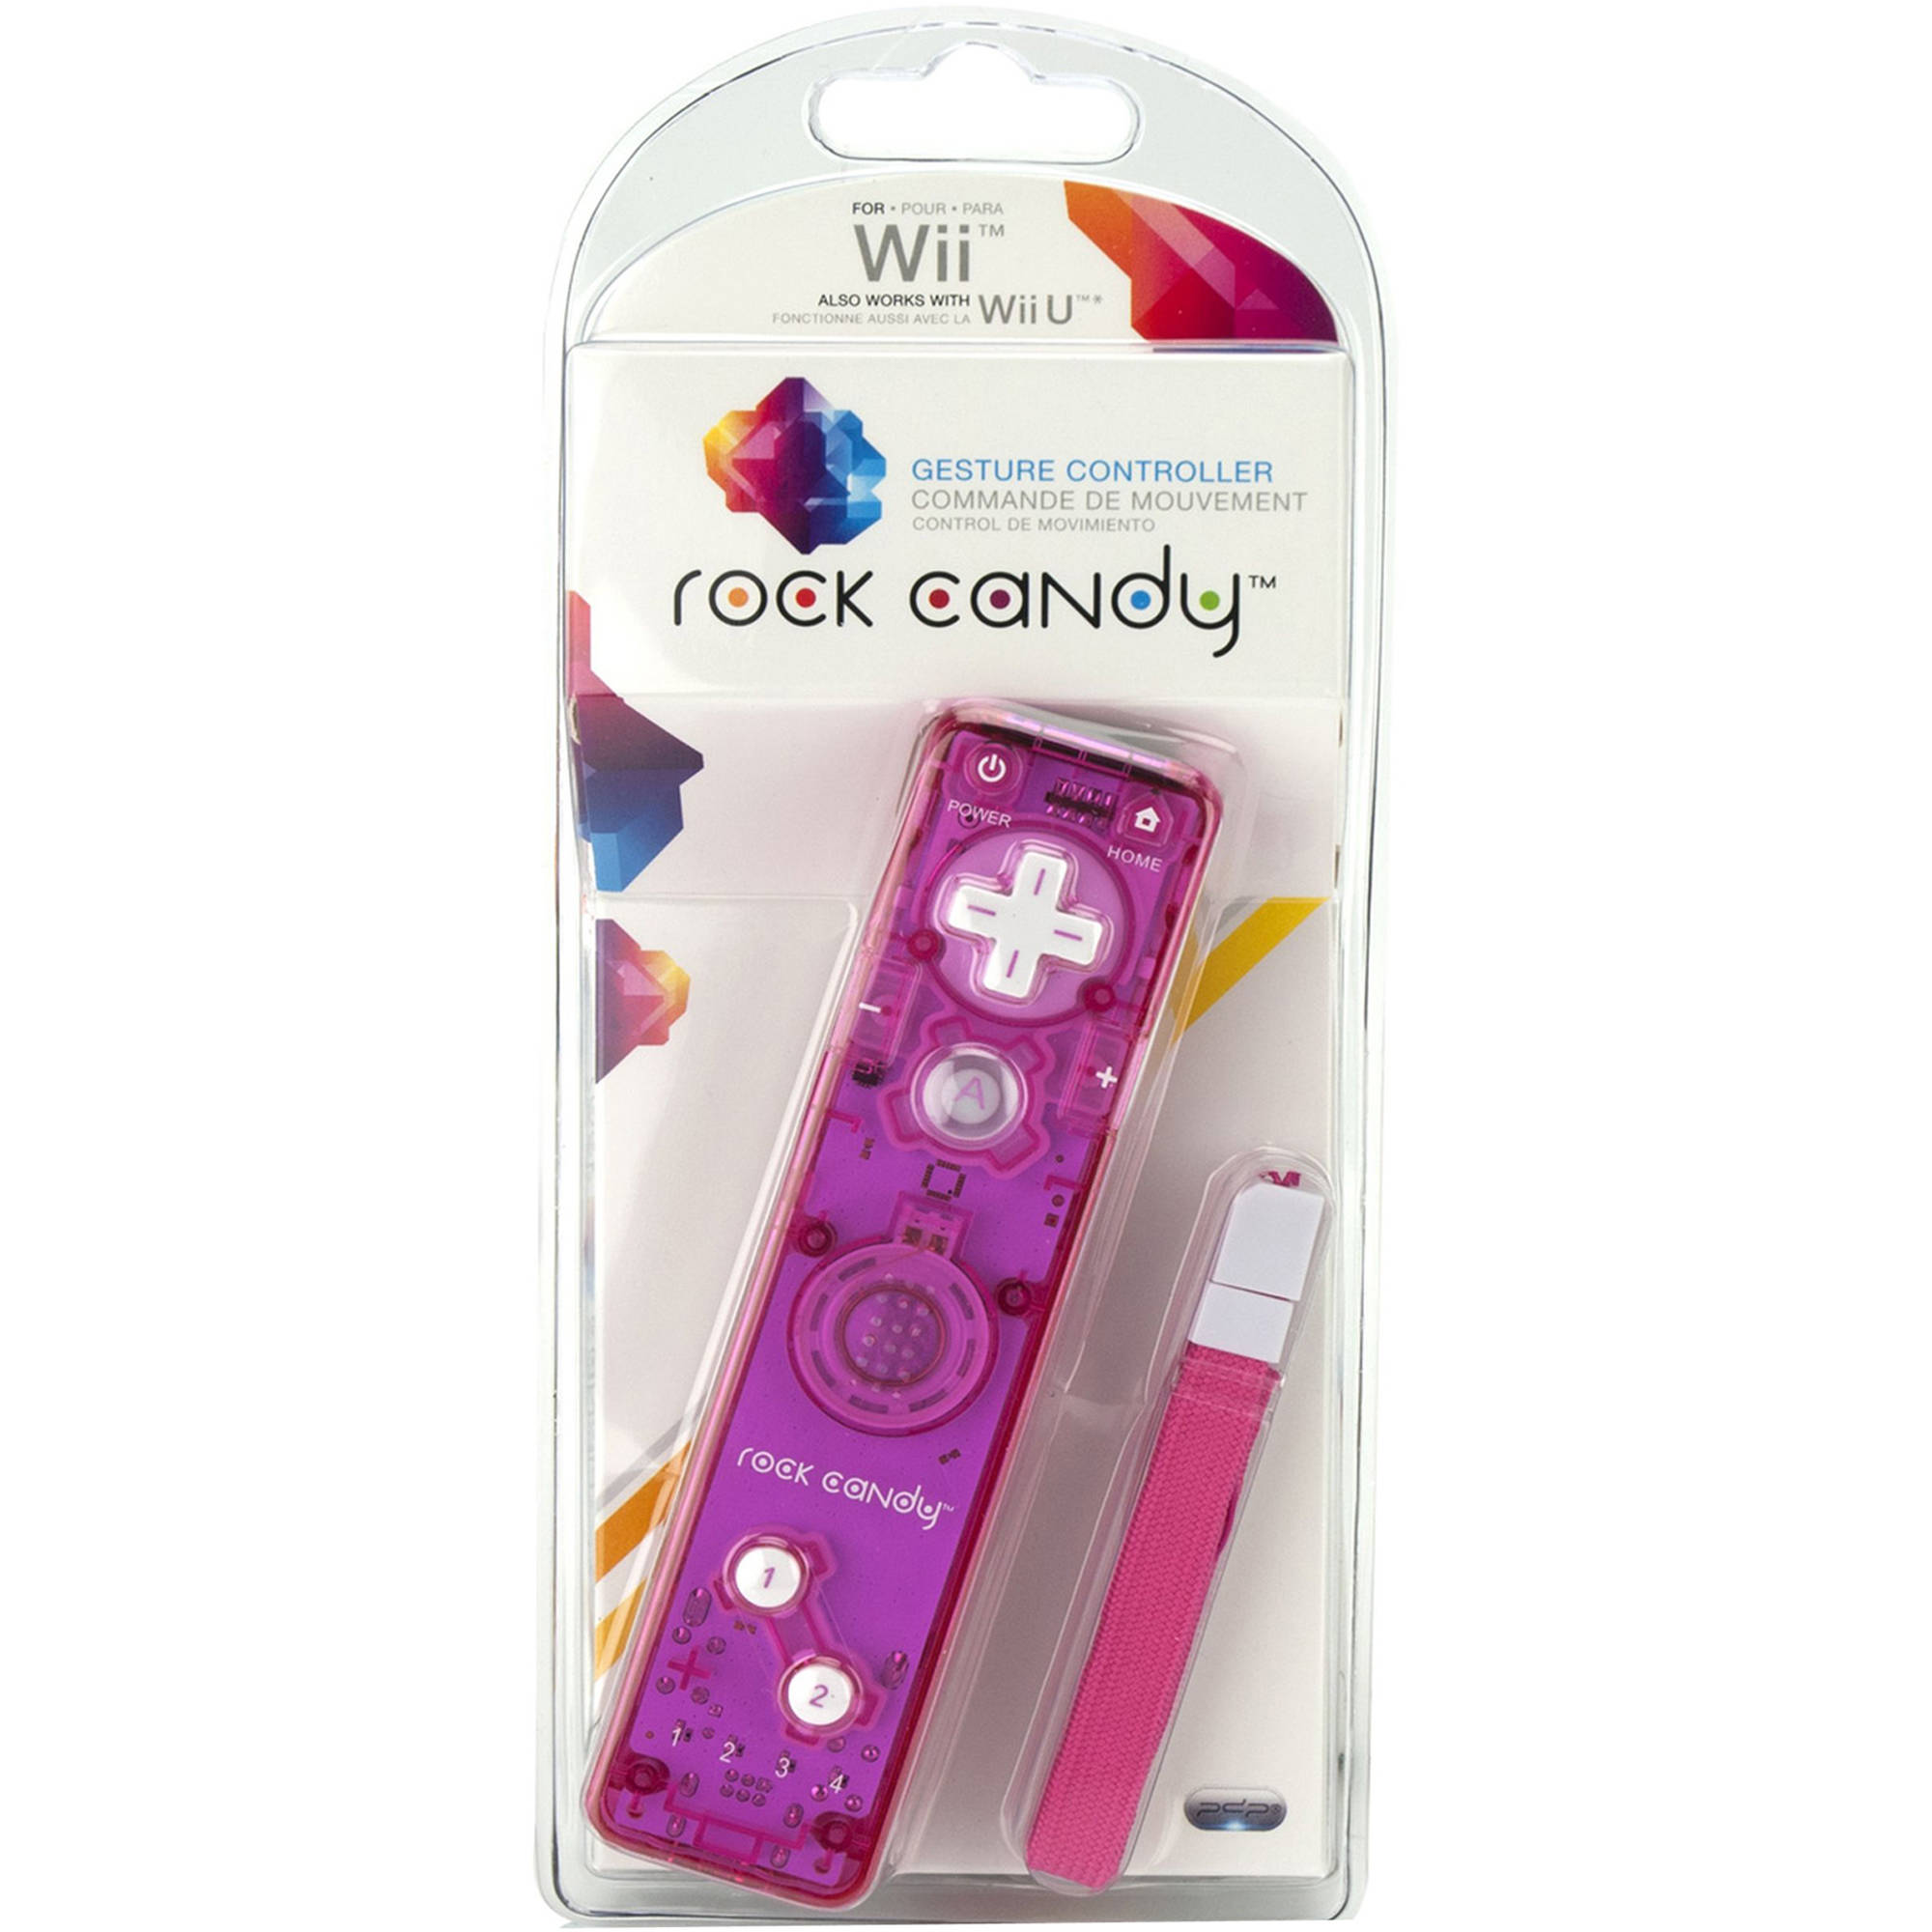 PDP Rock Candy Gesture Controller, Pink (Wii)